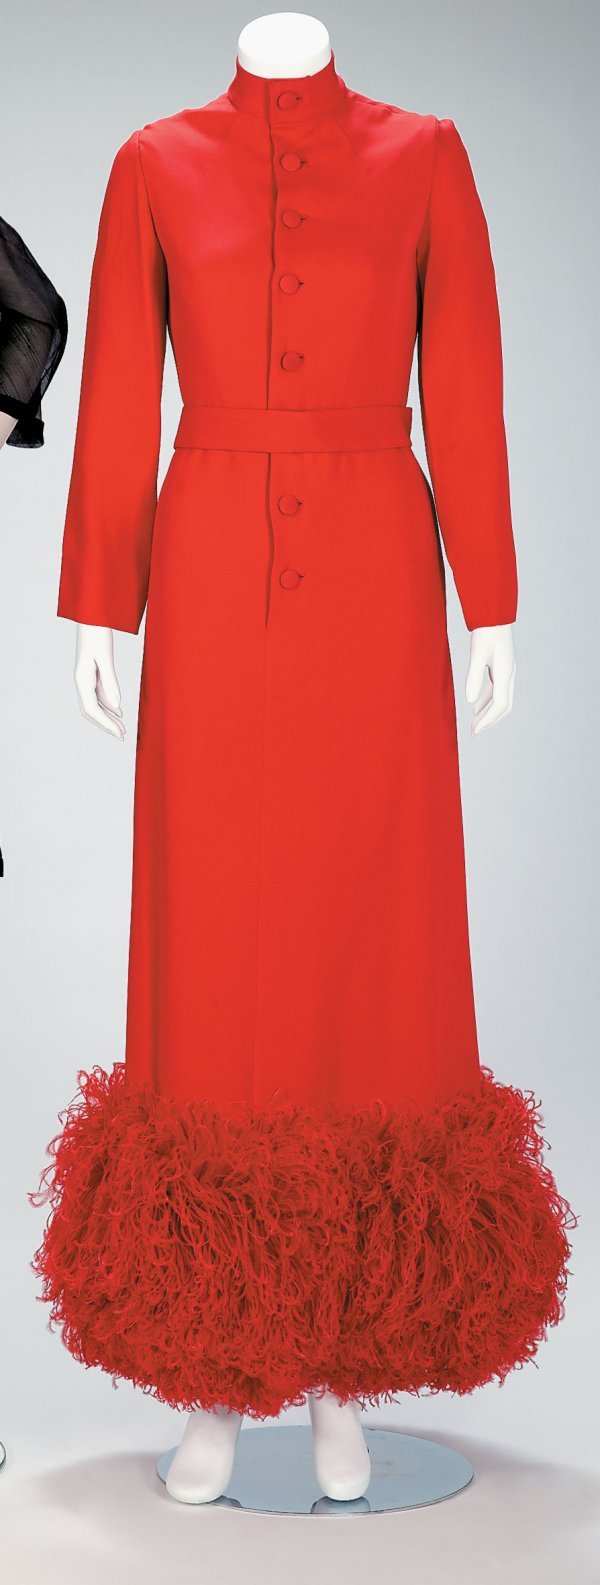 1020: Norman Norell red silk evening dress with ostrich